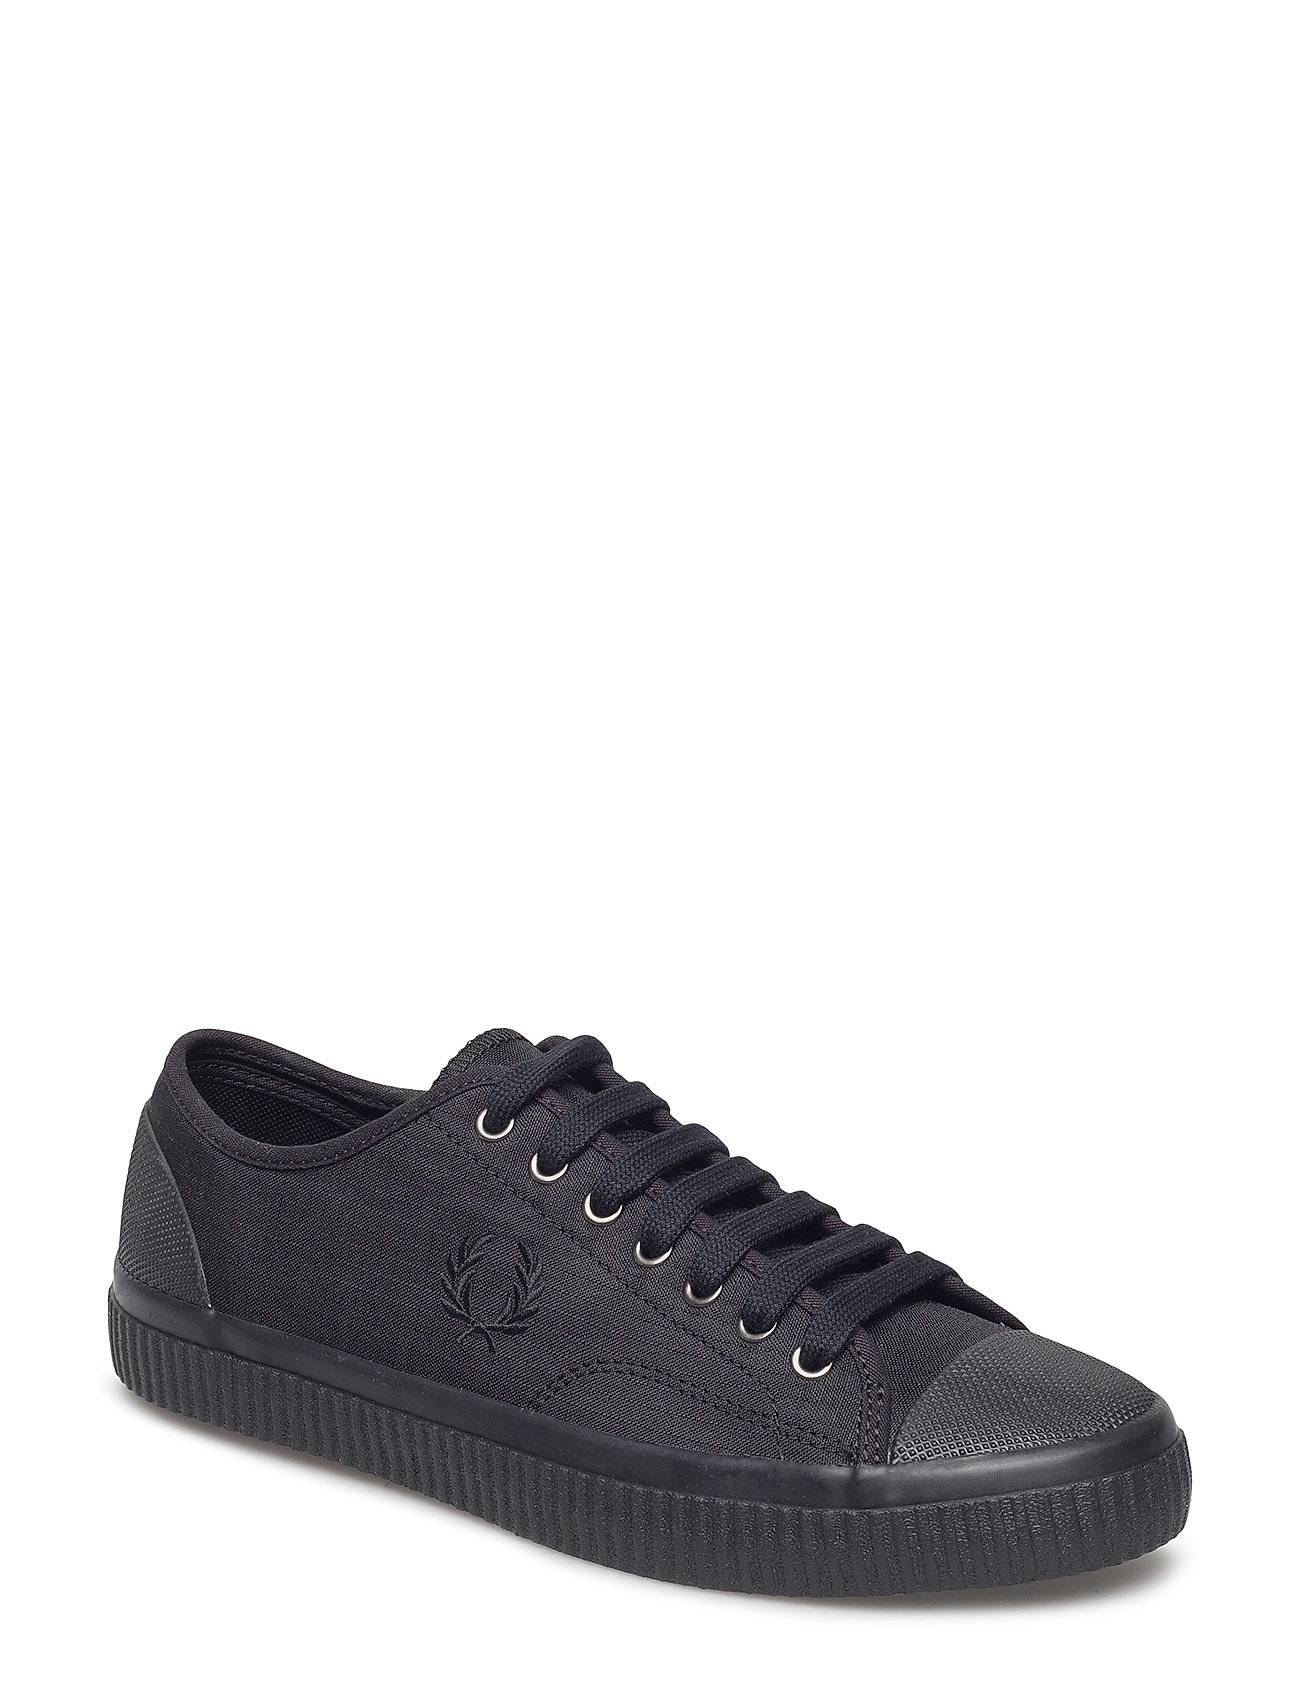 Fred Perry Hughes Cotton Ripstop